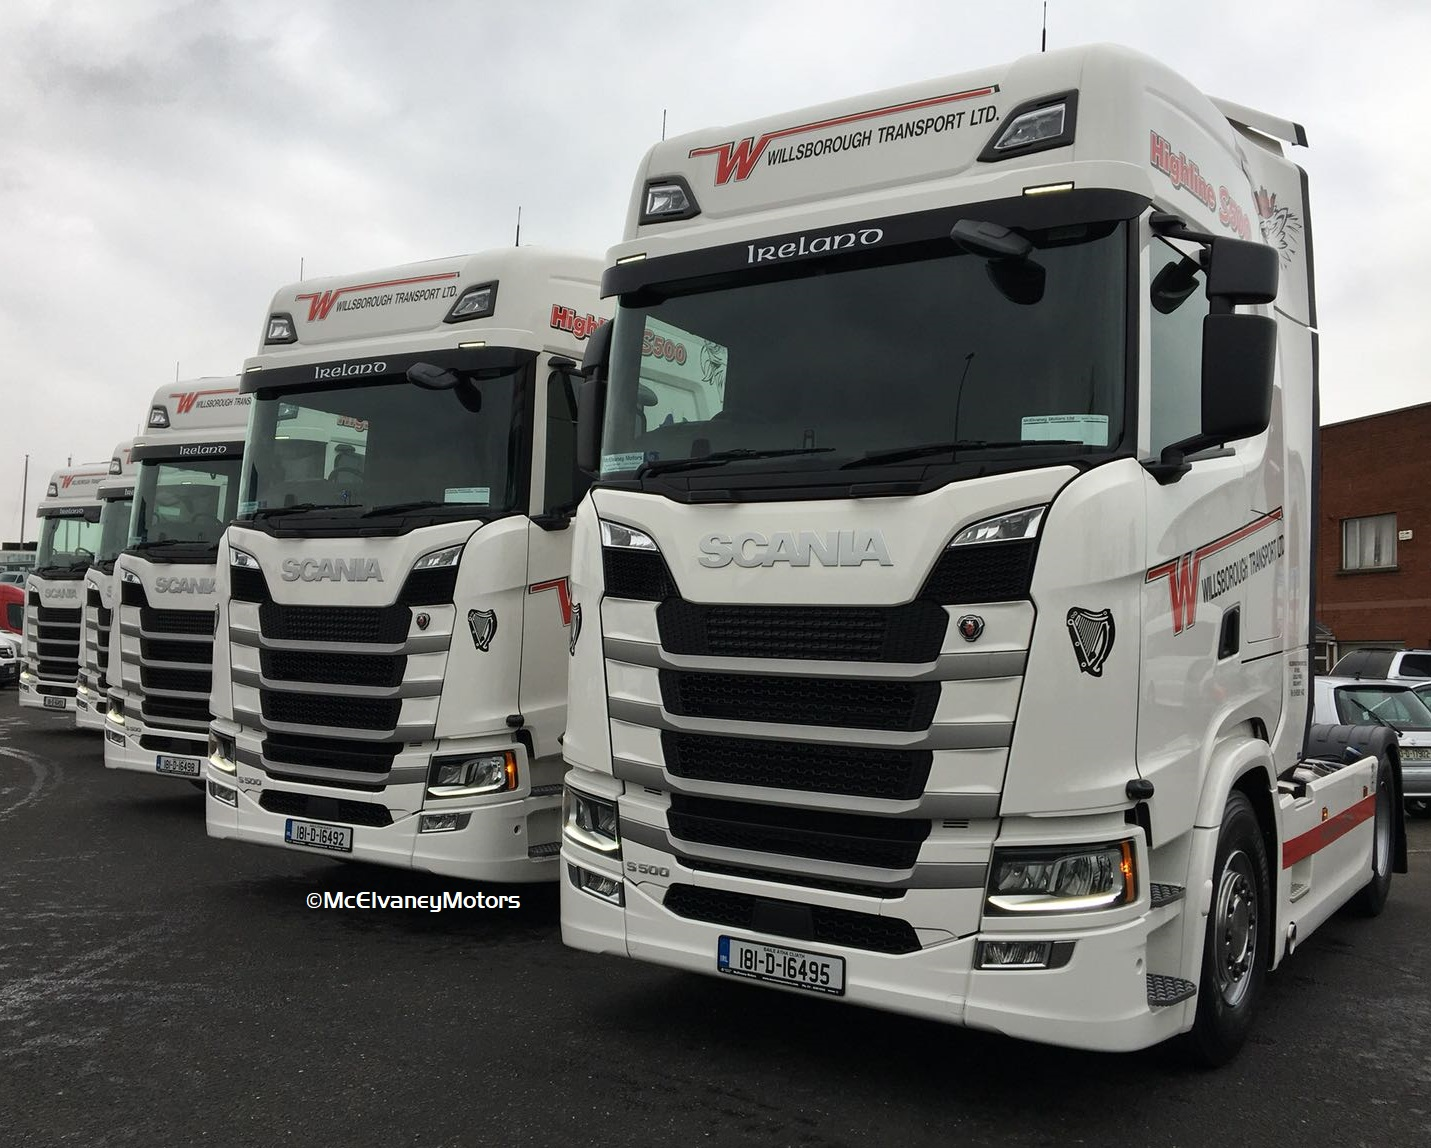 FIVE New S500 Scanias for Willsborough Transport